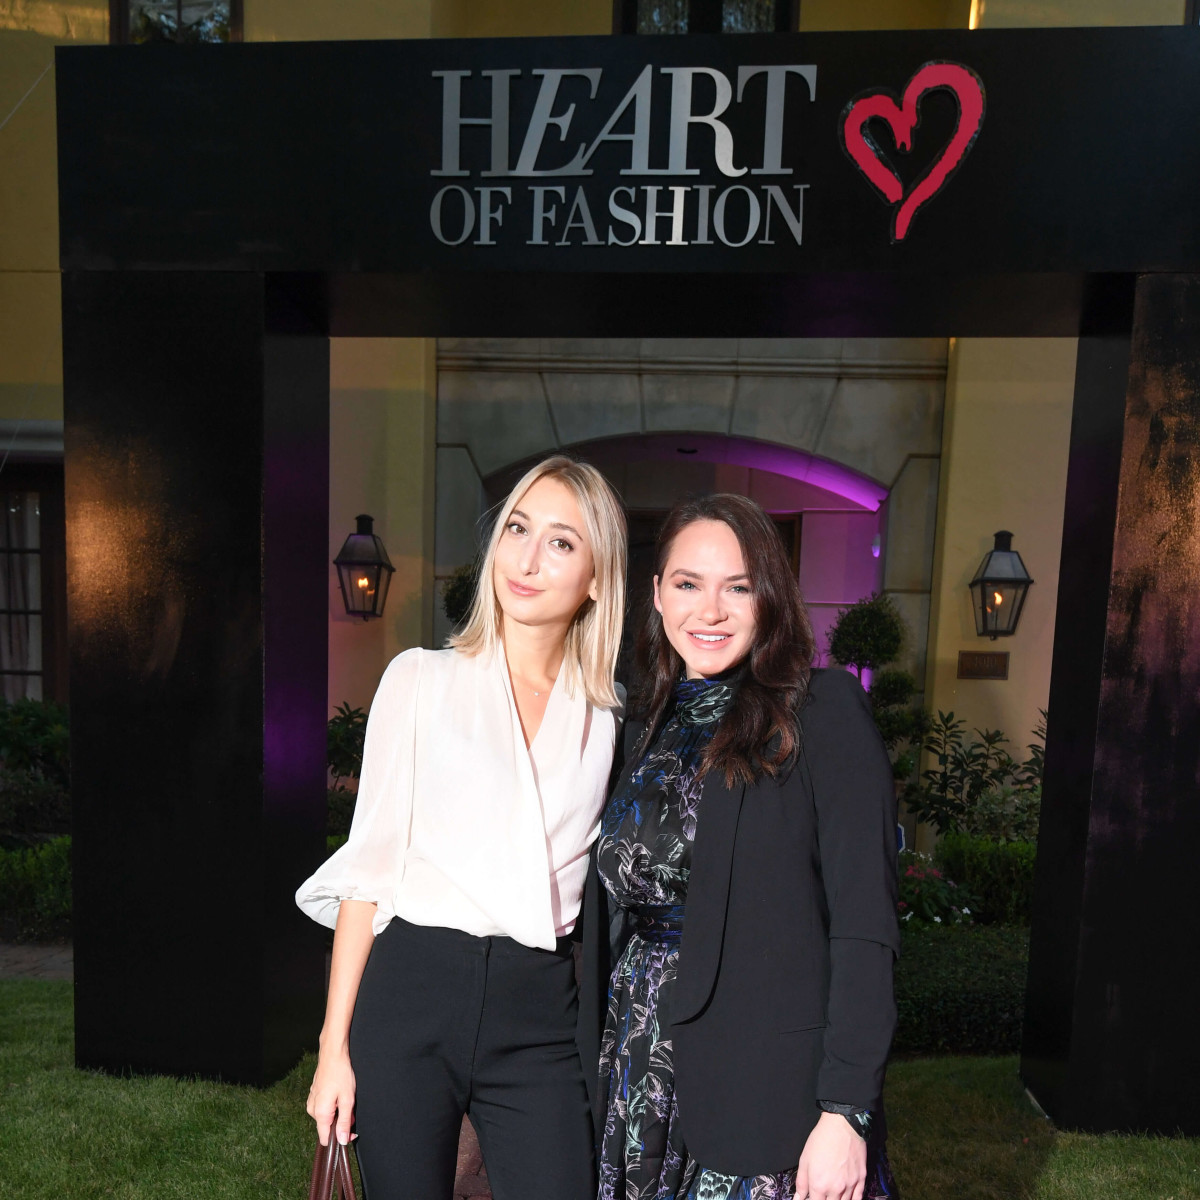 Heart of Fashion, Chiara Casiraghi Brody, Hannah Swiggart